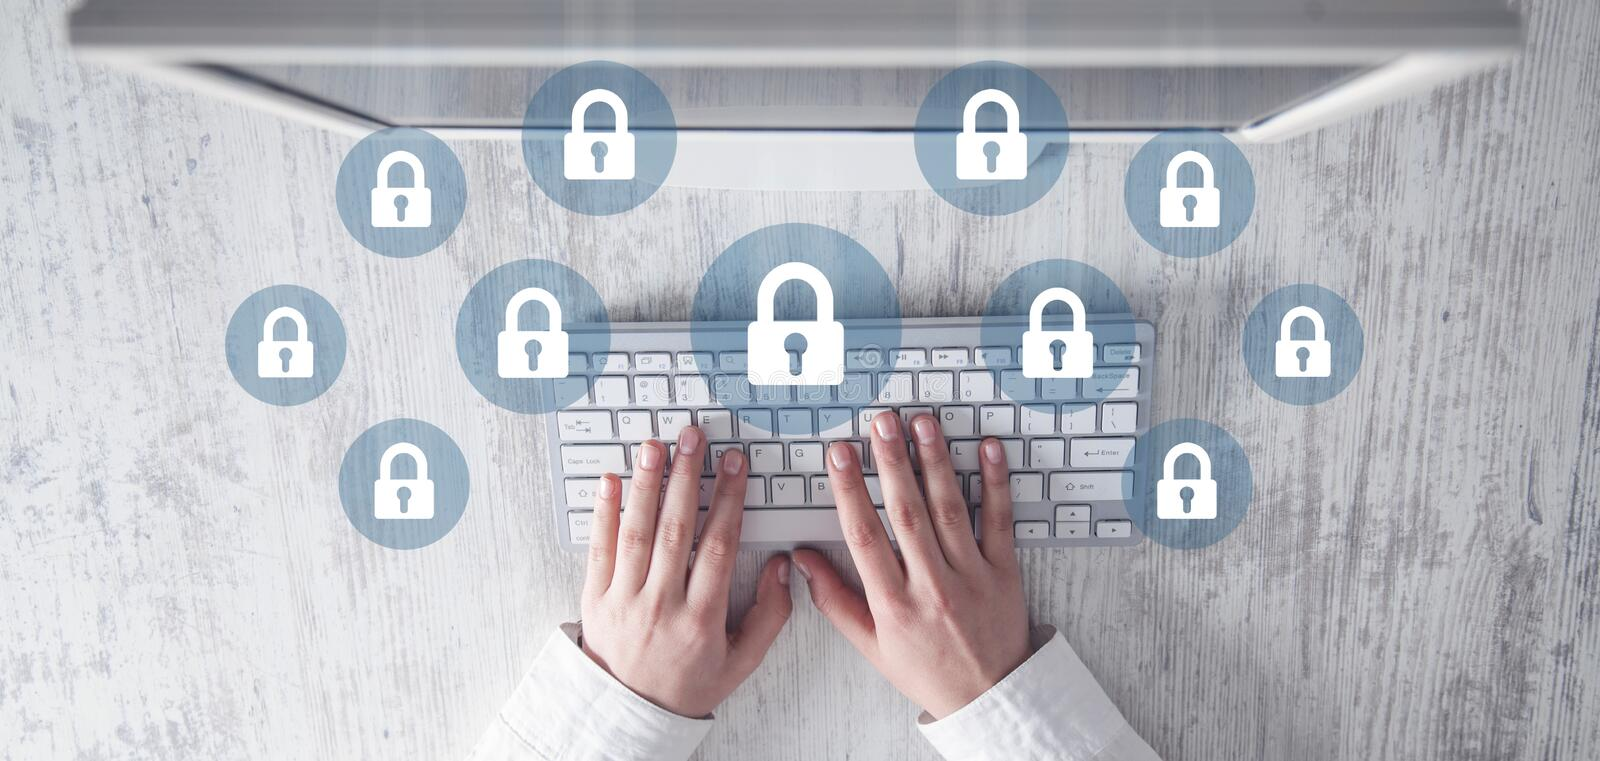 Technology security concept. Business concept royalty free stock photo